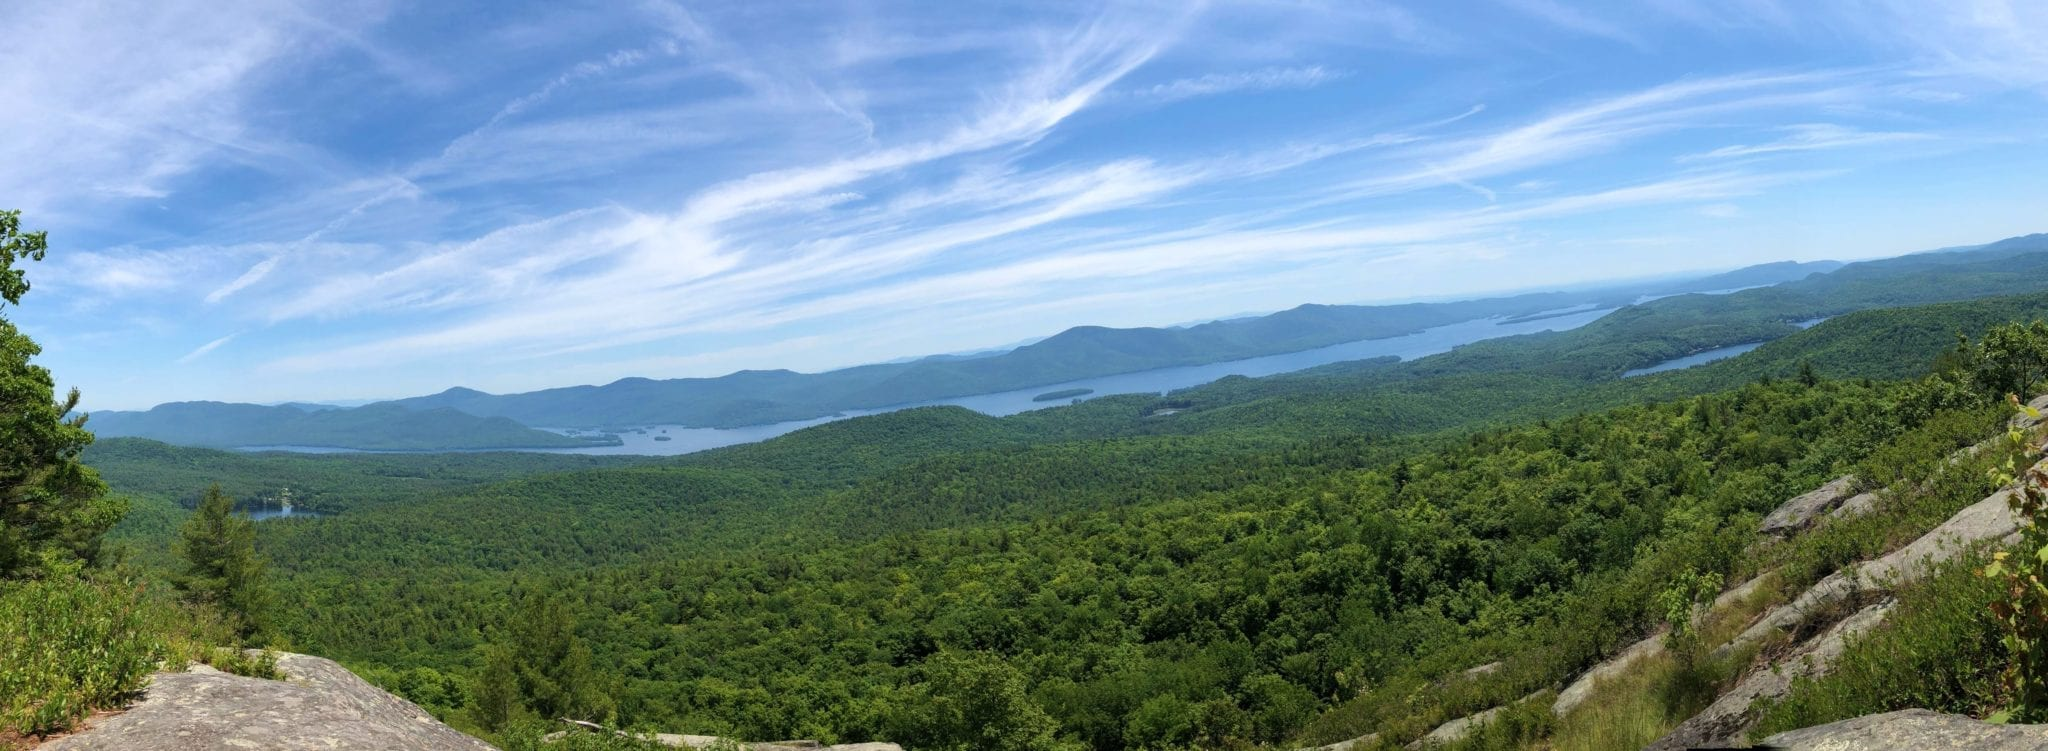 View of Lake George from the top of Cat Mountain (almost 2,000 feet!)